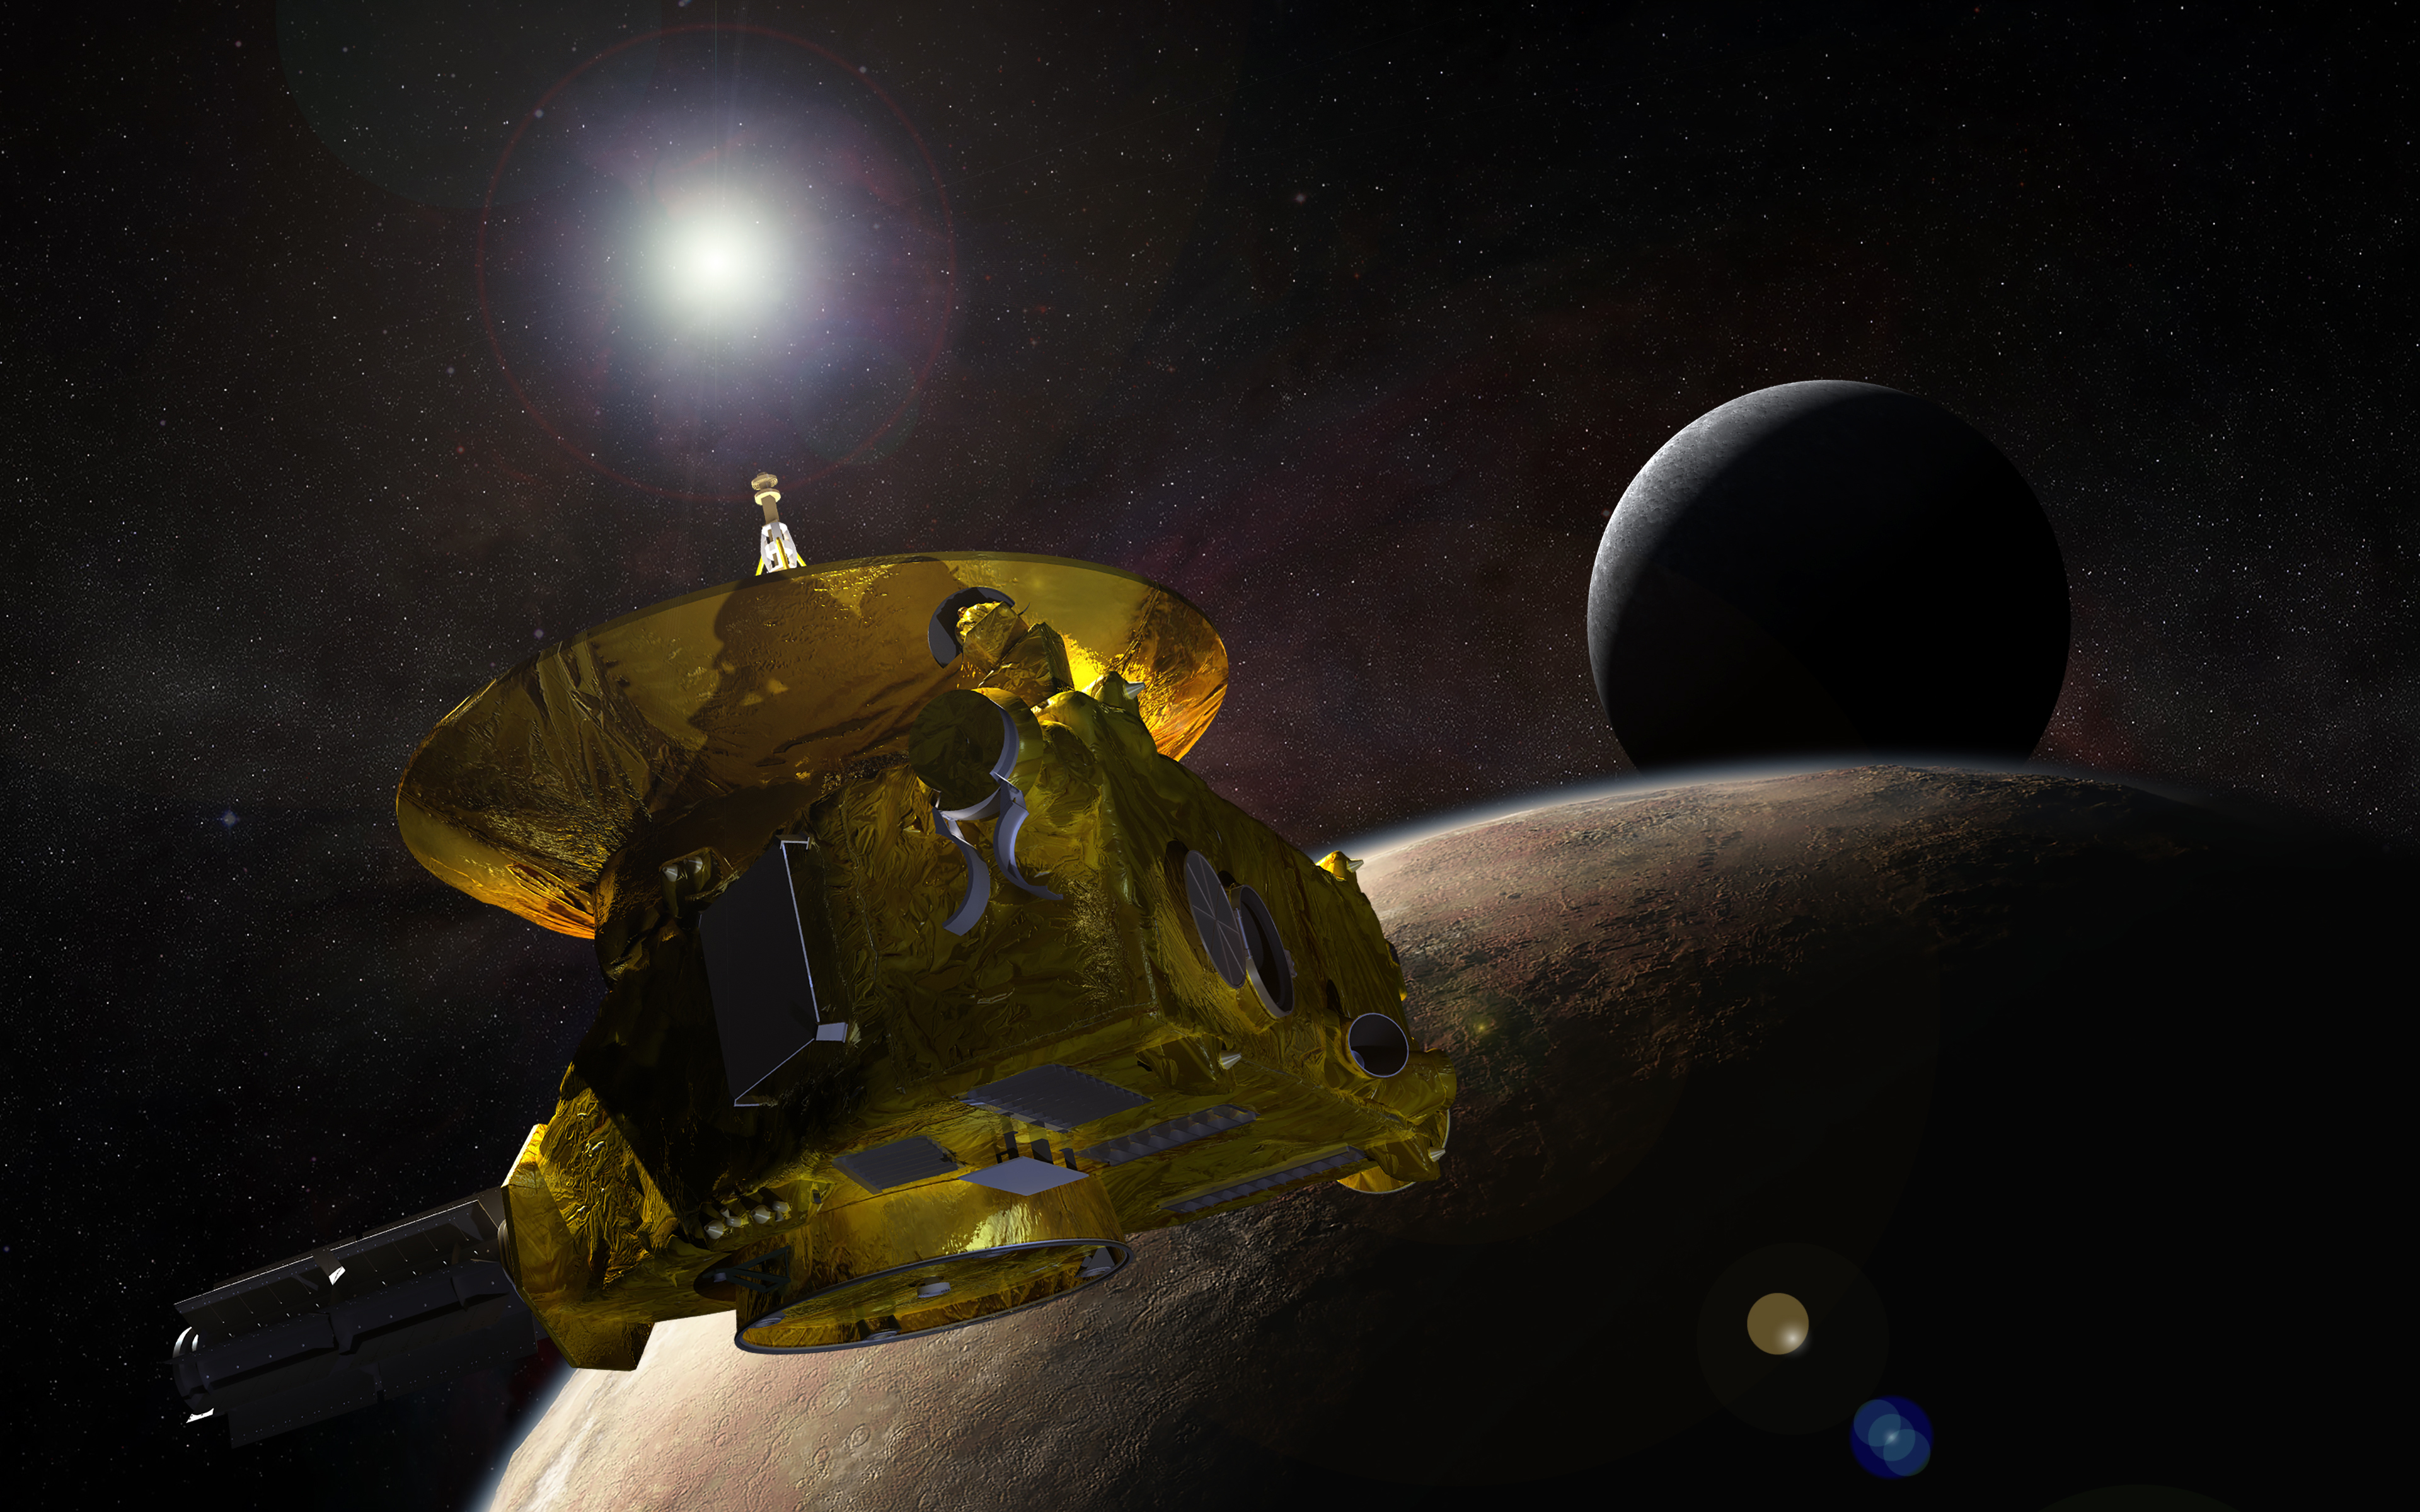 New Horizons expanded scientific understanding of Pluto and is now set to rendezvous with Ultima Thule in the Kuiper Belt